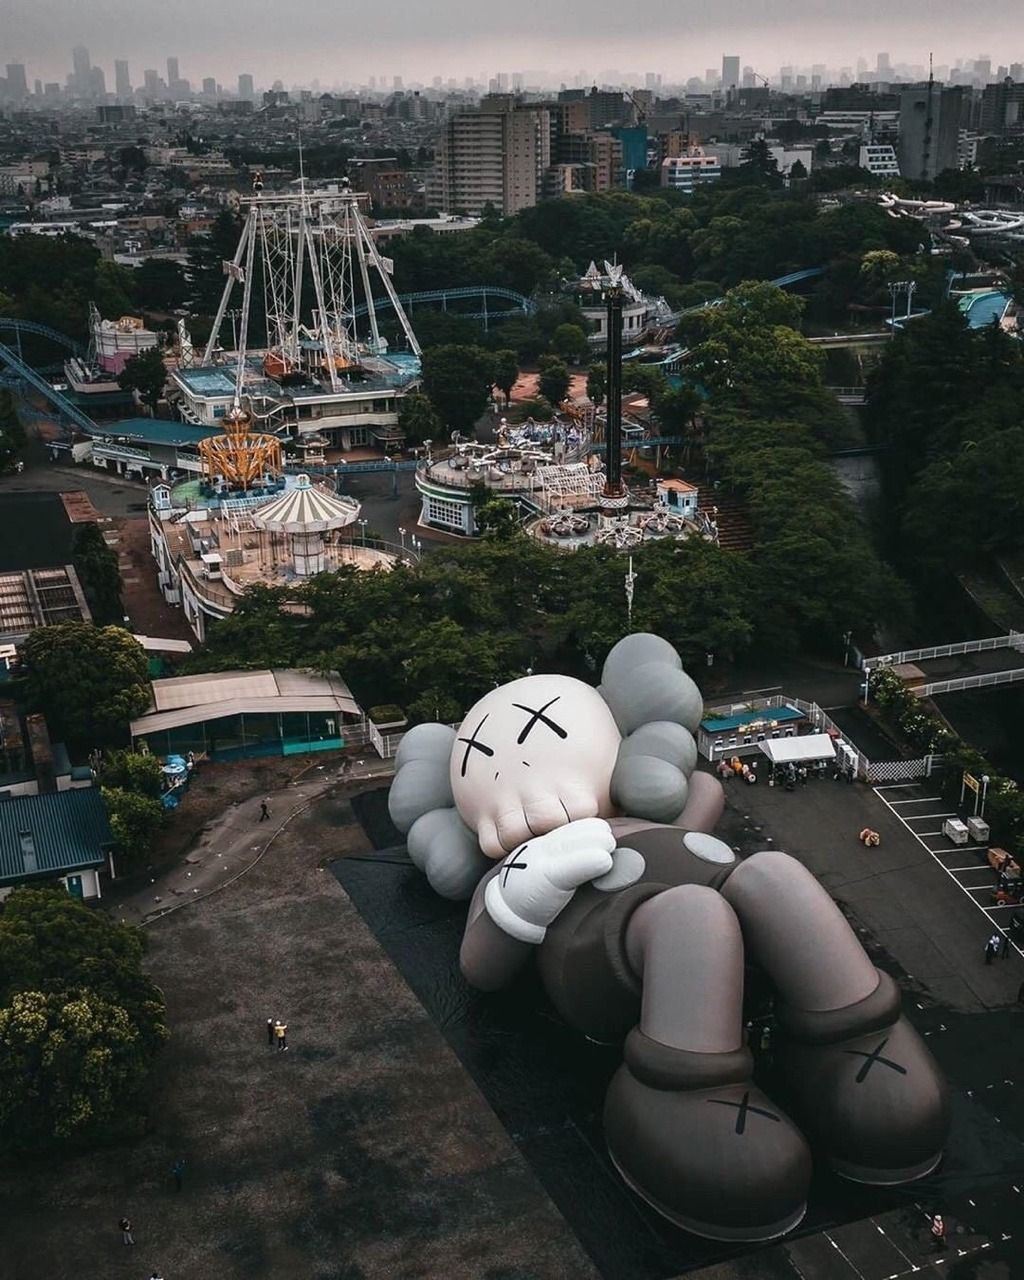 Pin on Kaws